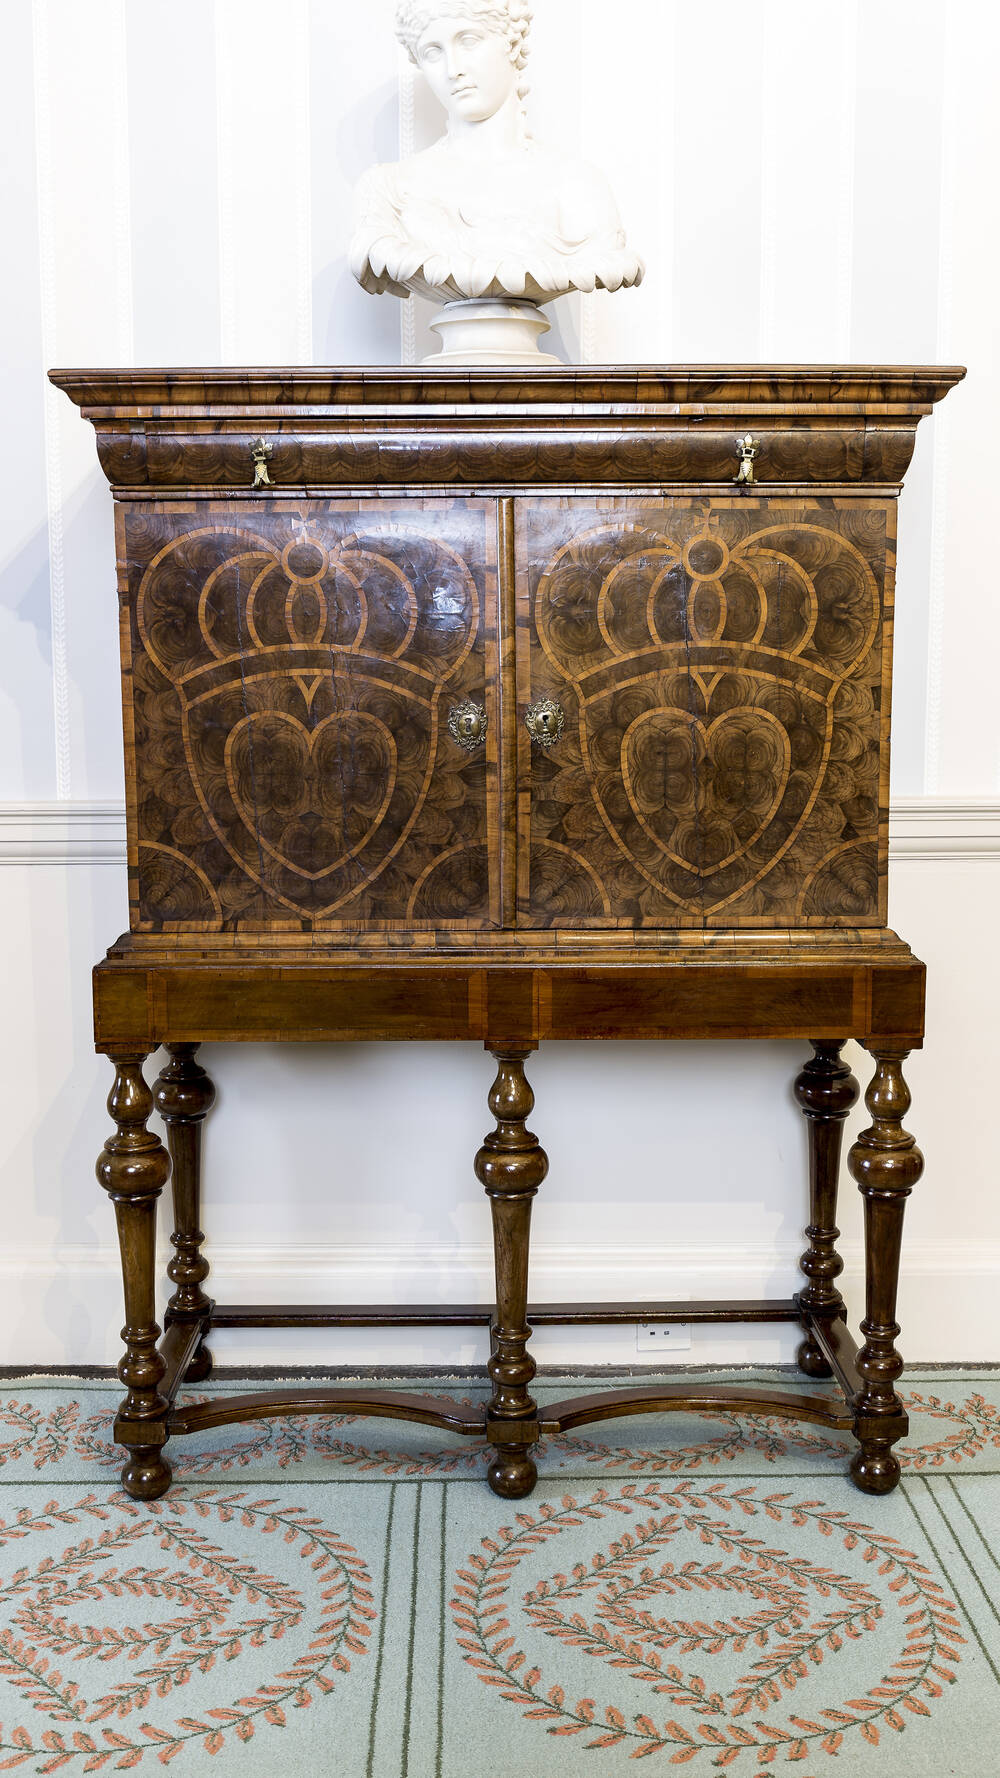 A polished wooden cabinet with six spindle legs. The doors have a heart marquetry pattern, with two metal locks. A stone bust sits on top of the cabinet.